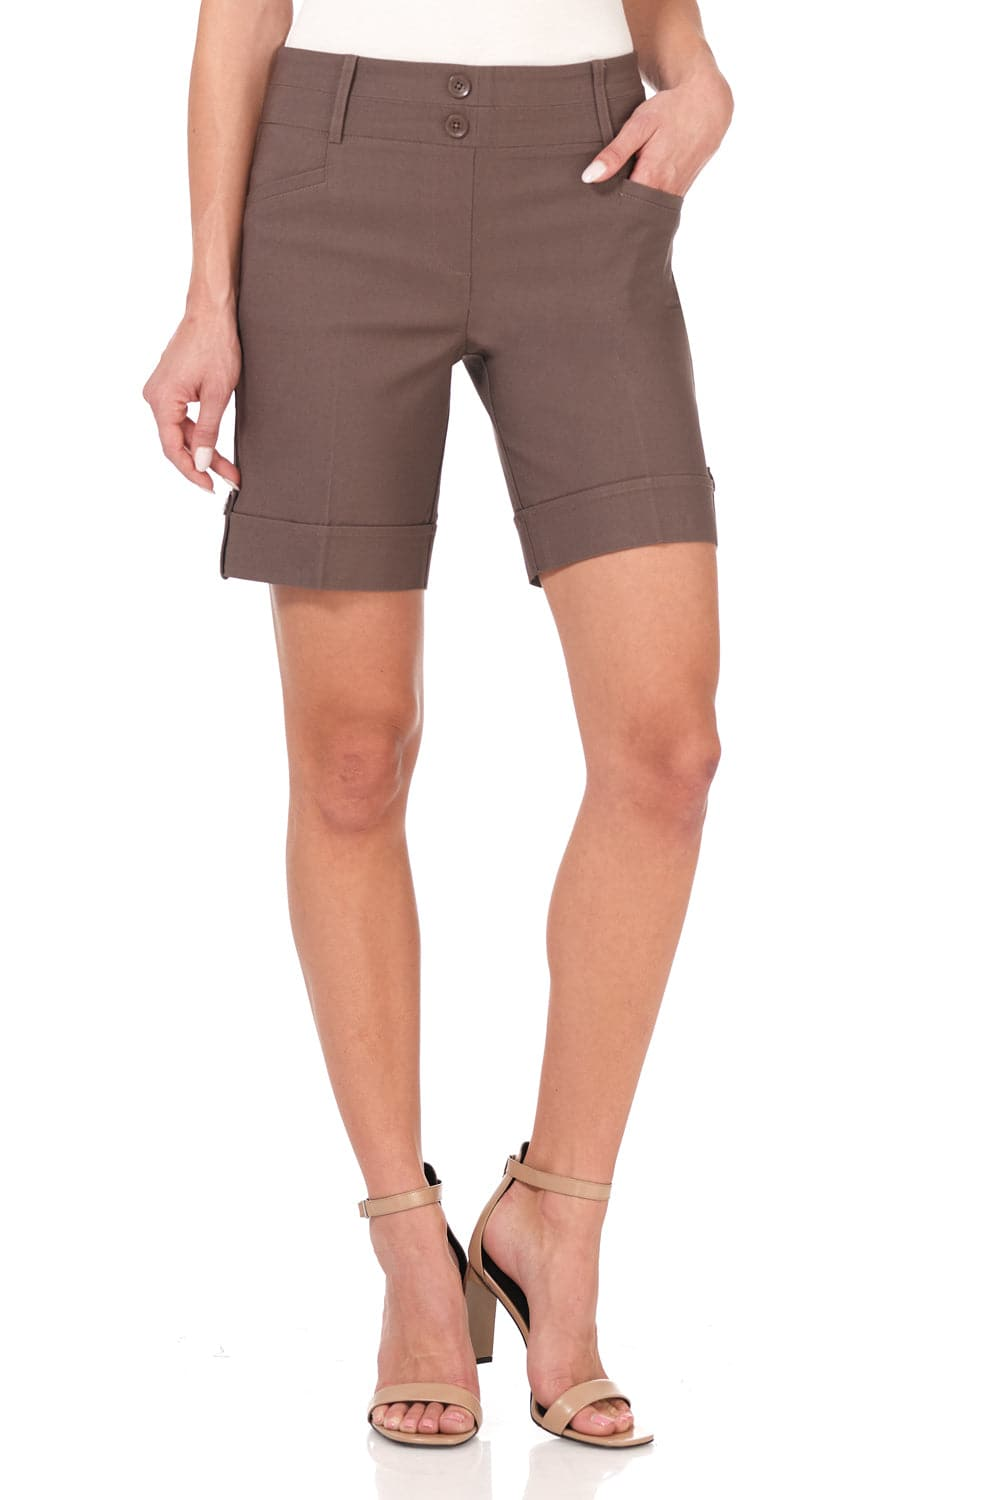 "Women's 8"" Classic Shorts with Stitched Cuff"